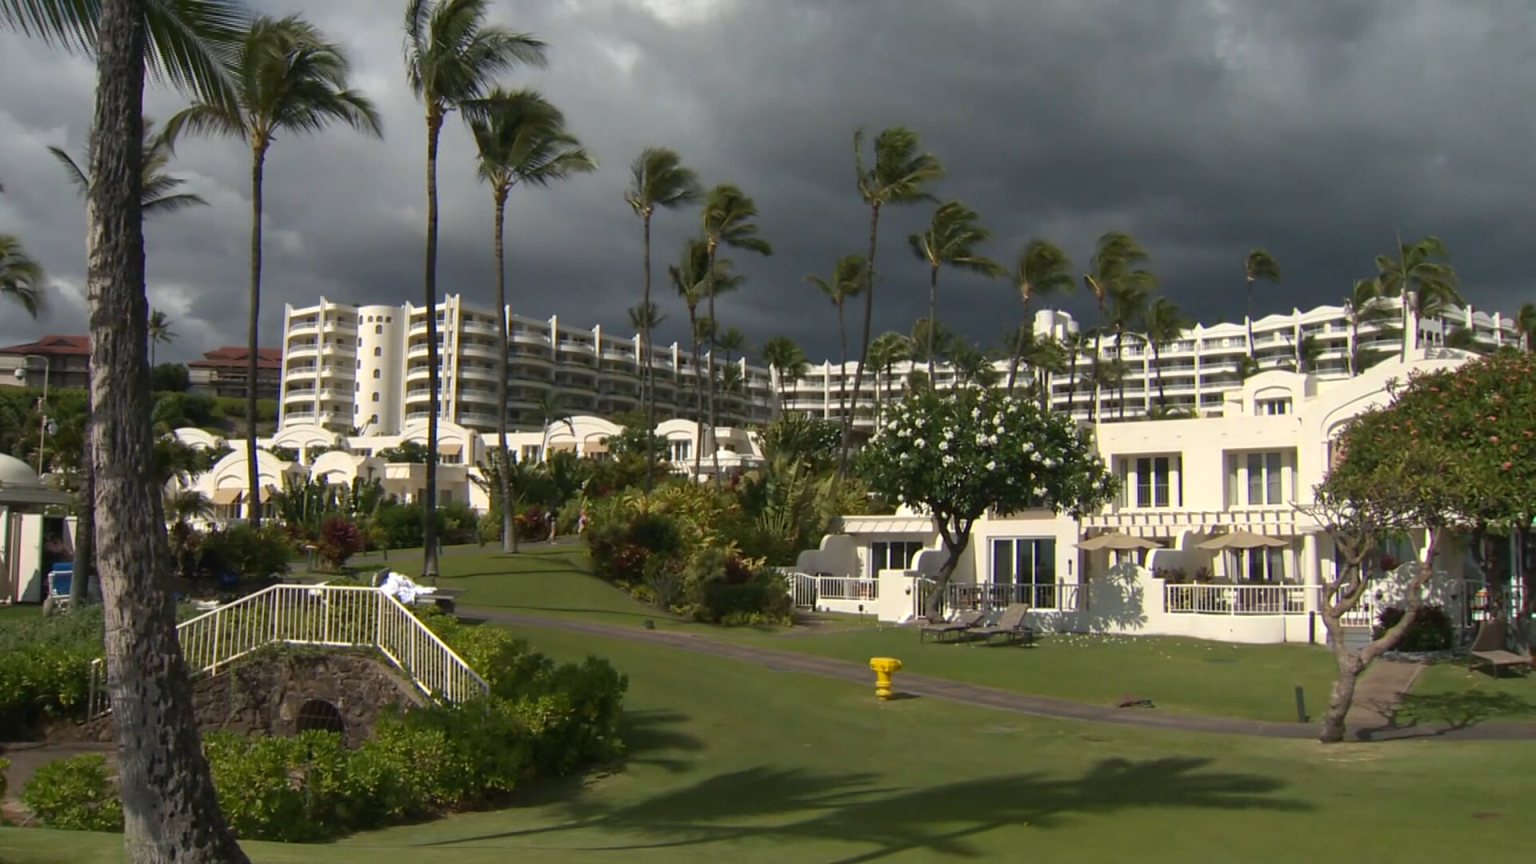 Lawmakers, Lobbyists Facing Criticism for Flying to Maui Conference Amid Pandemic